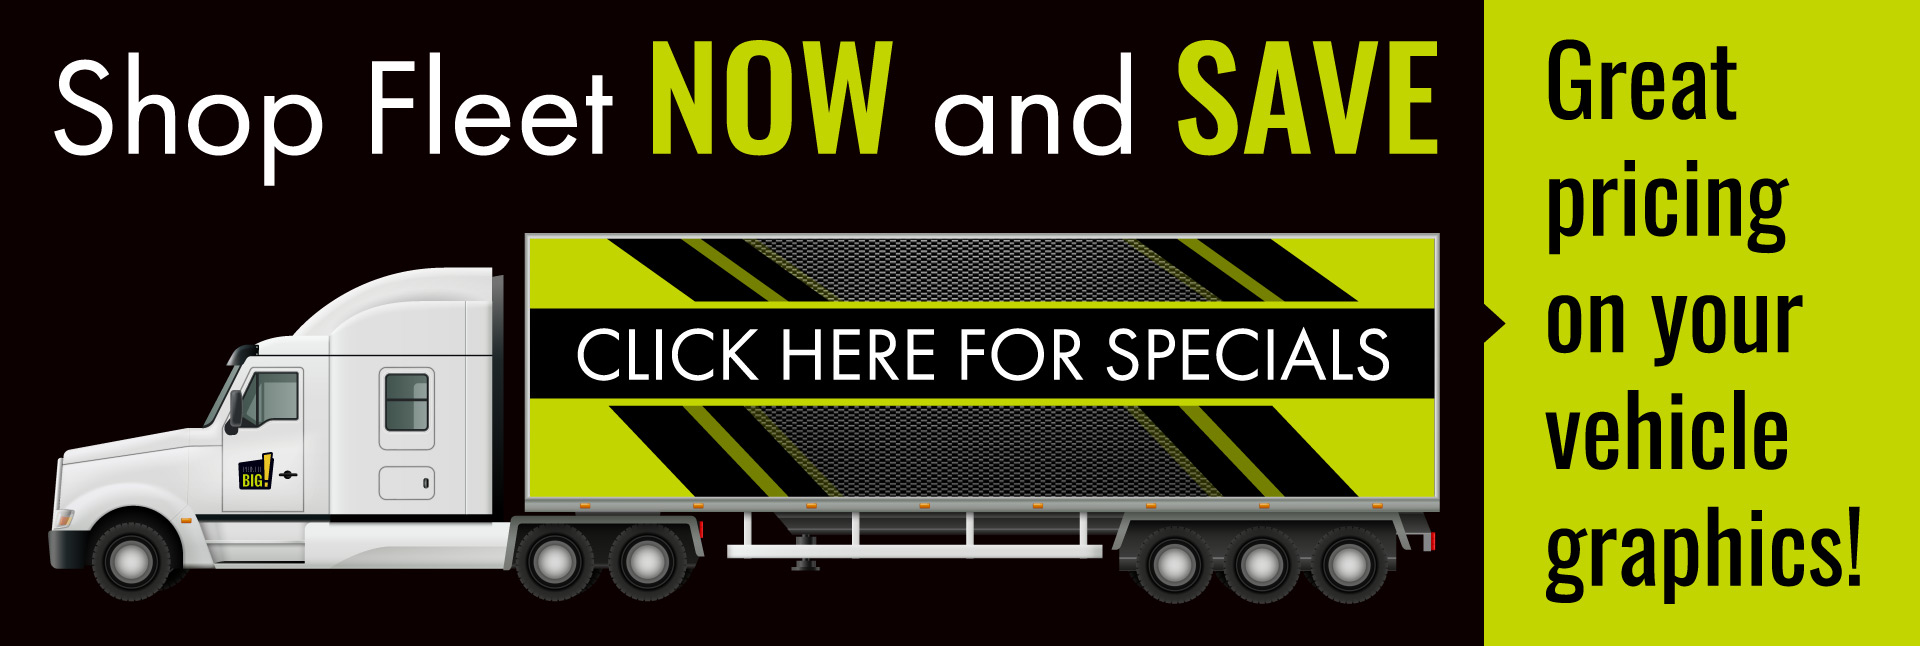 Great pricing on your vehicle graphics!